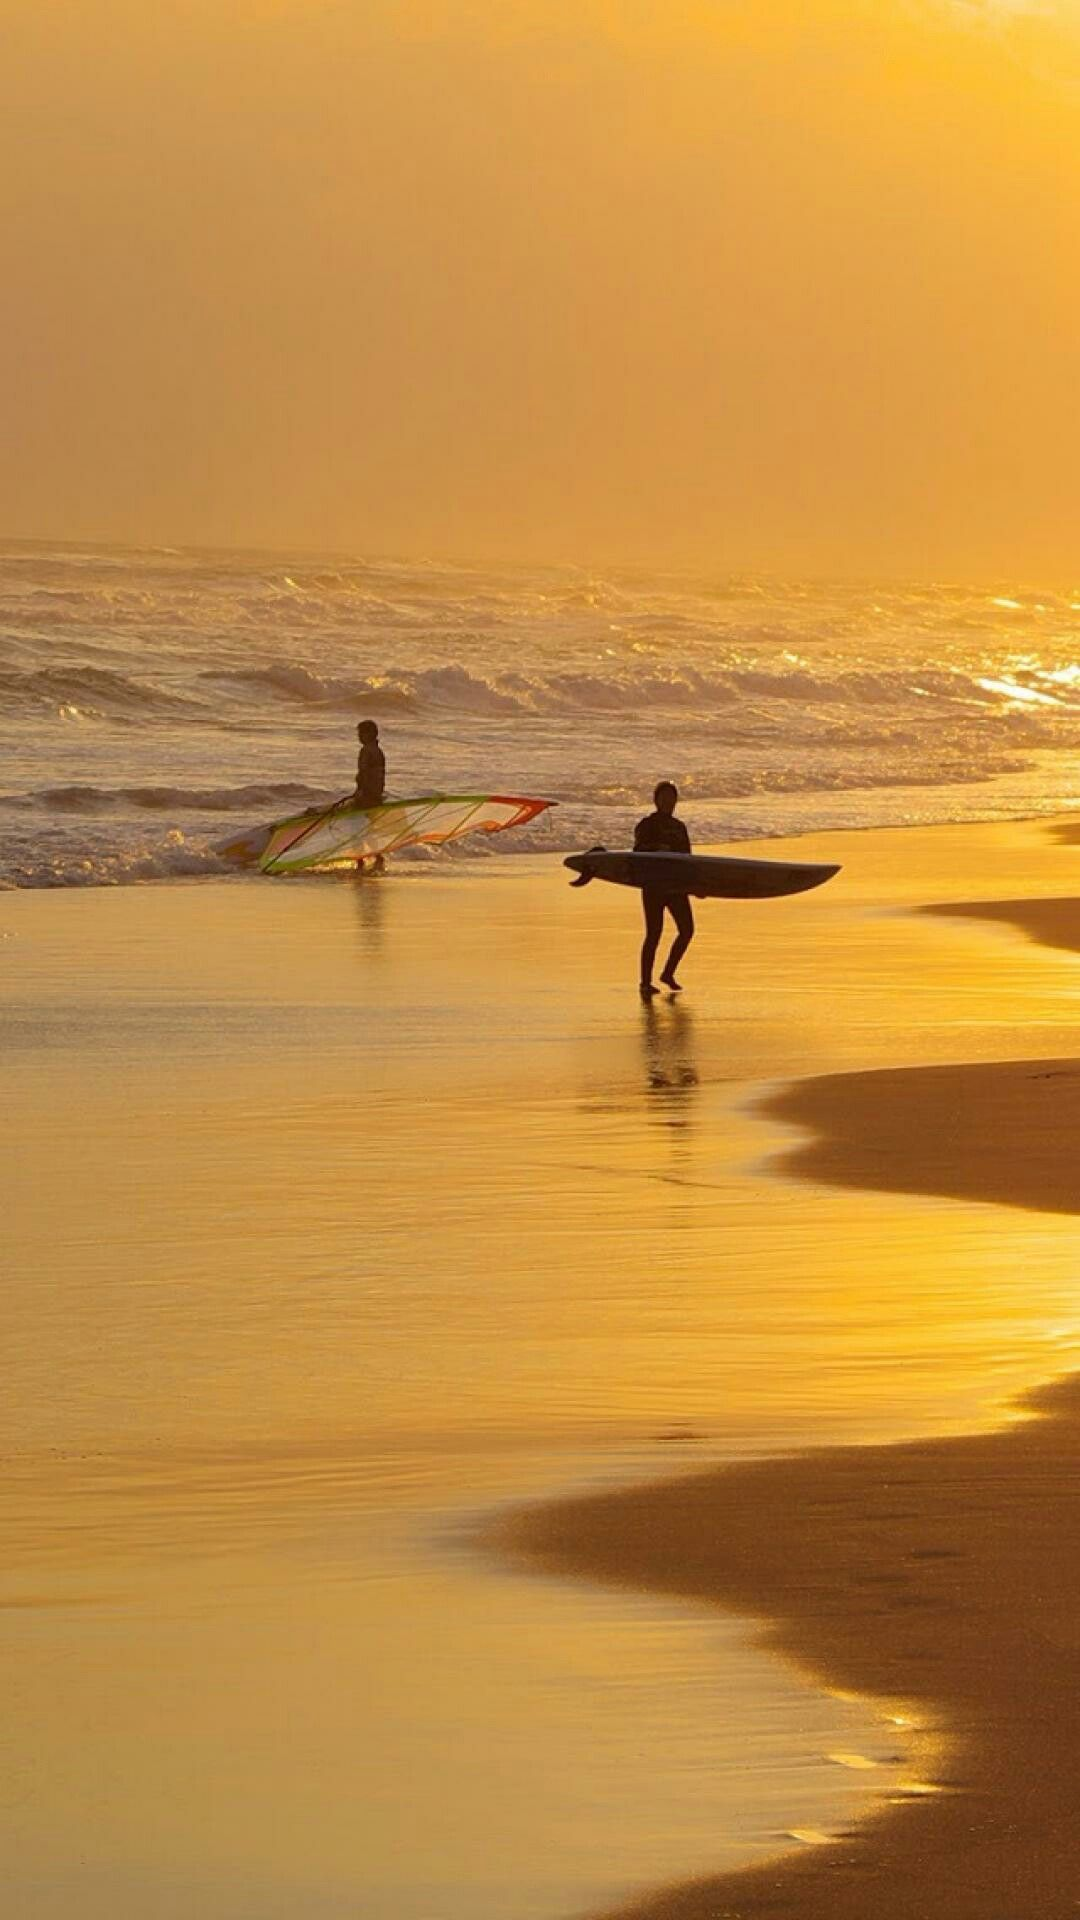 Pin By Kallol Bhattacharya On Sunsets And Sunrises Sunset Surf